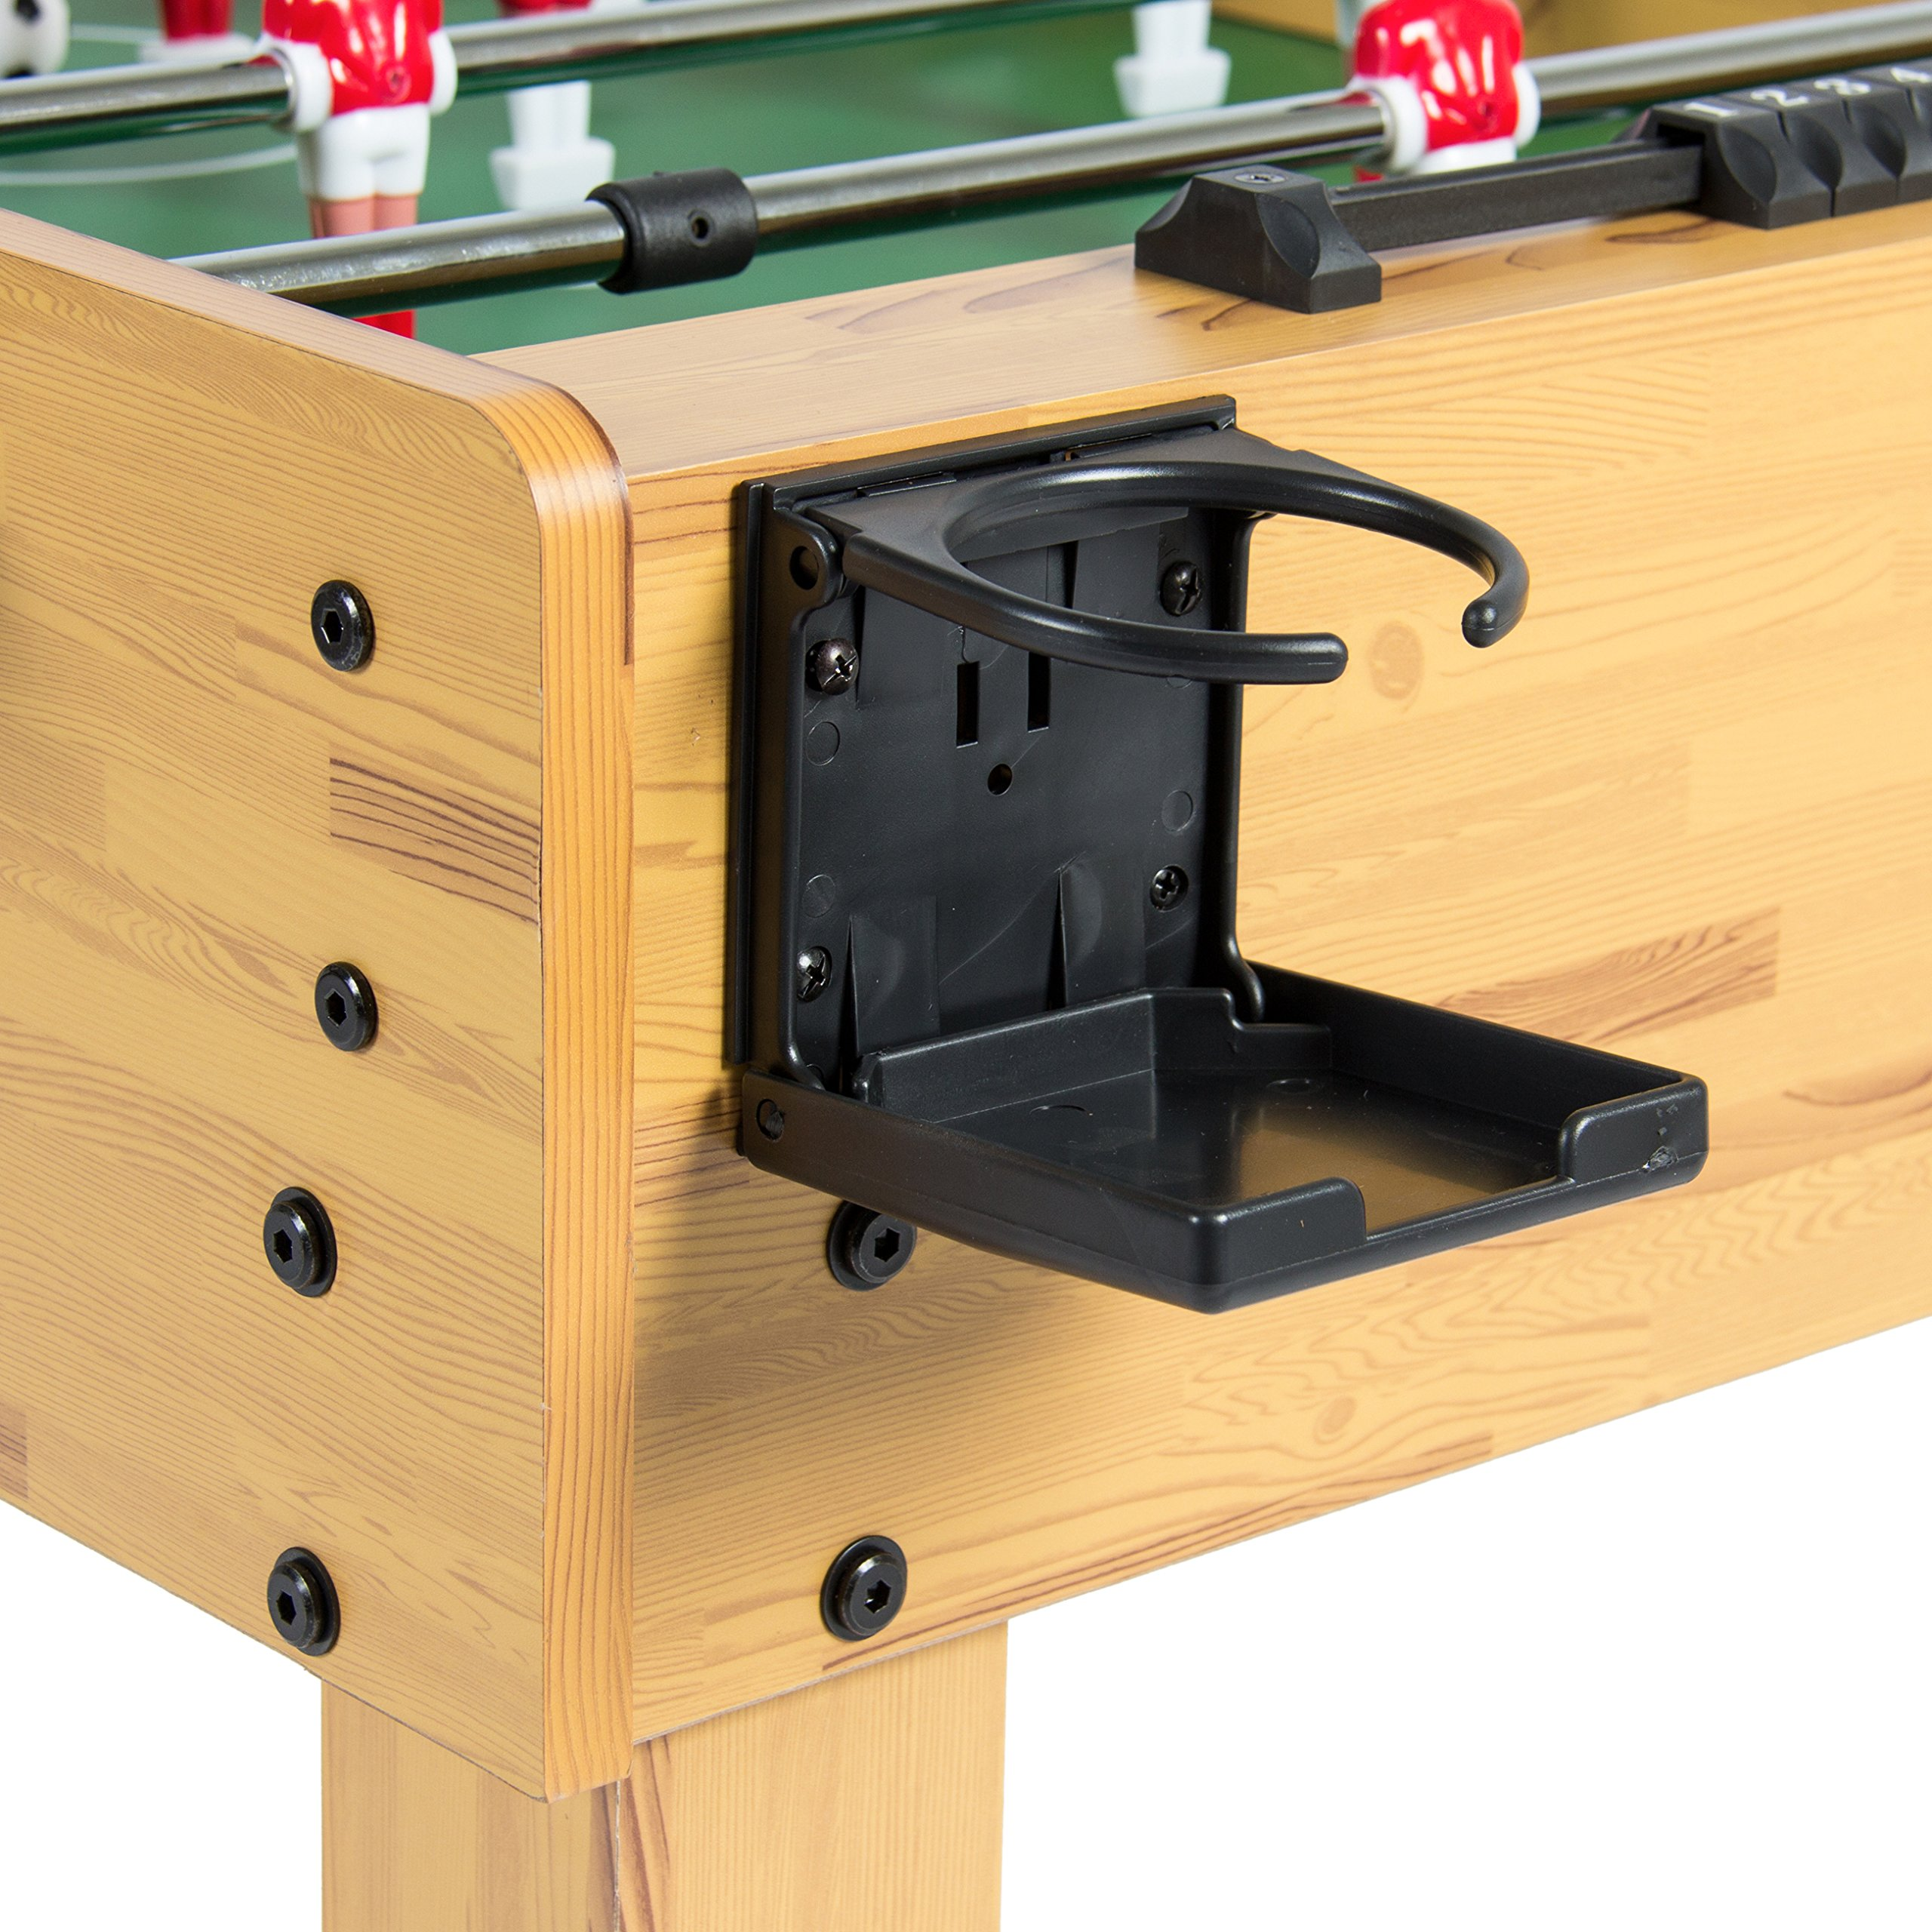 10. The 48-inch Foosball Table by Best Choice